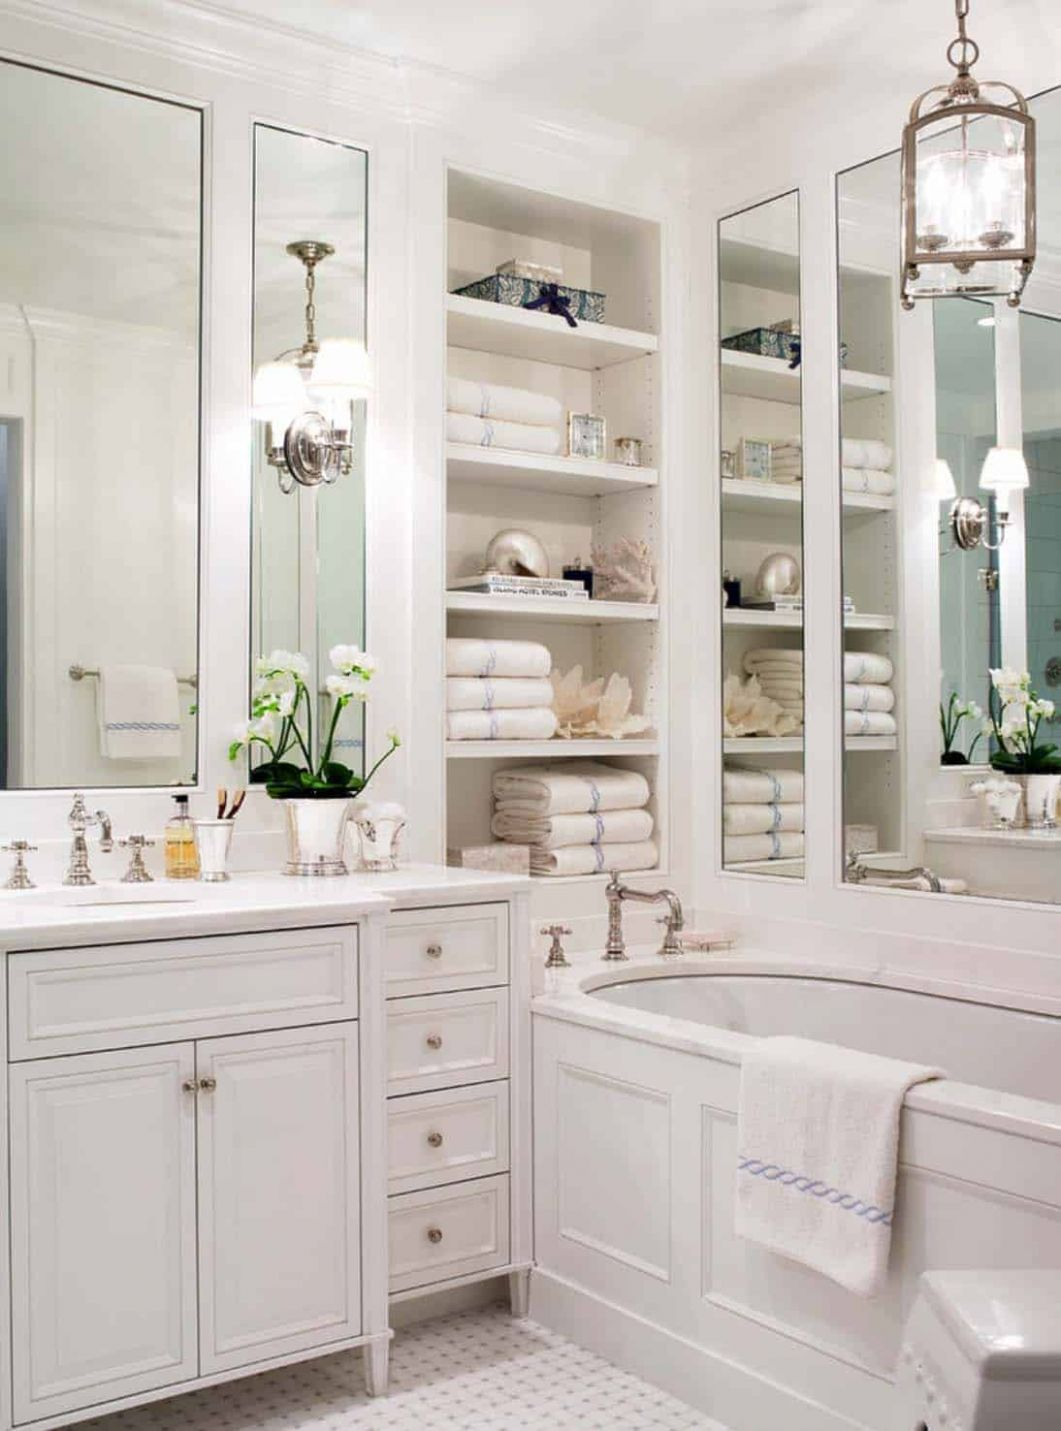 One Kindesign - bathroom ideas pictures